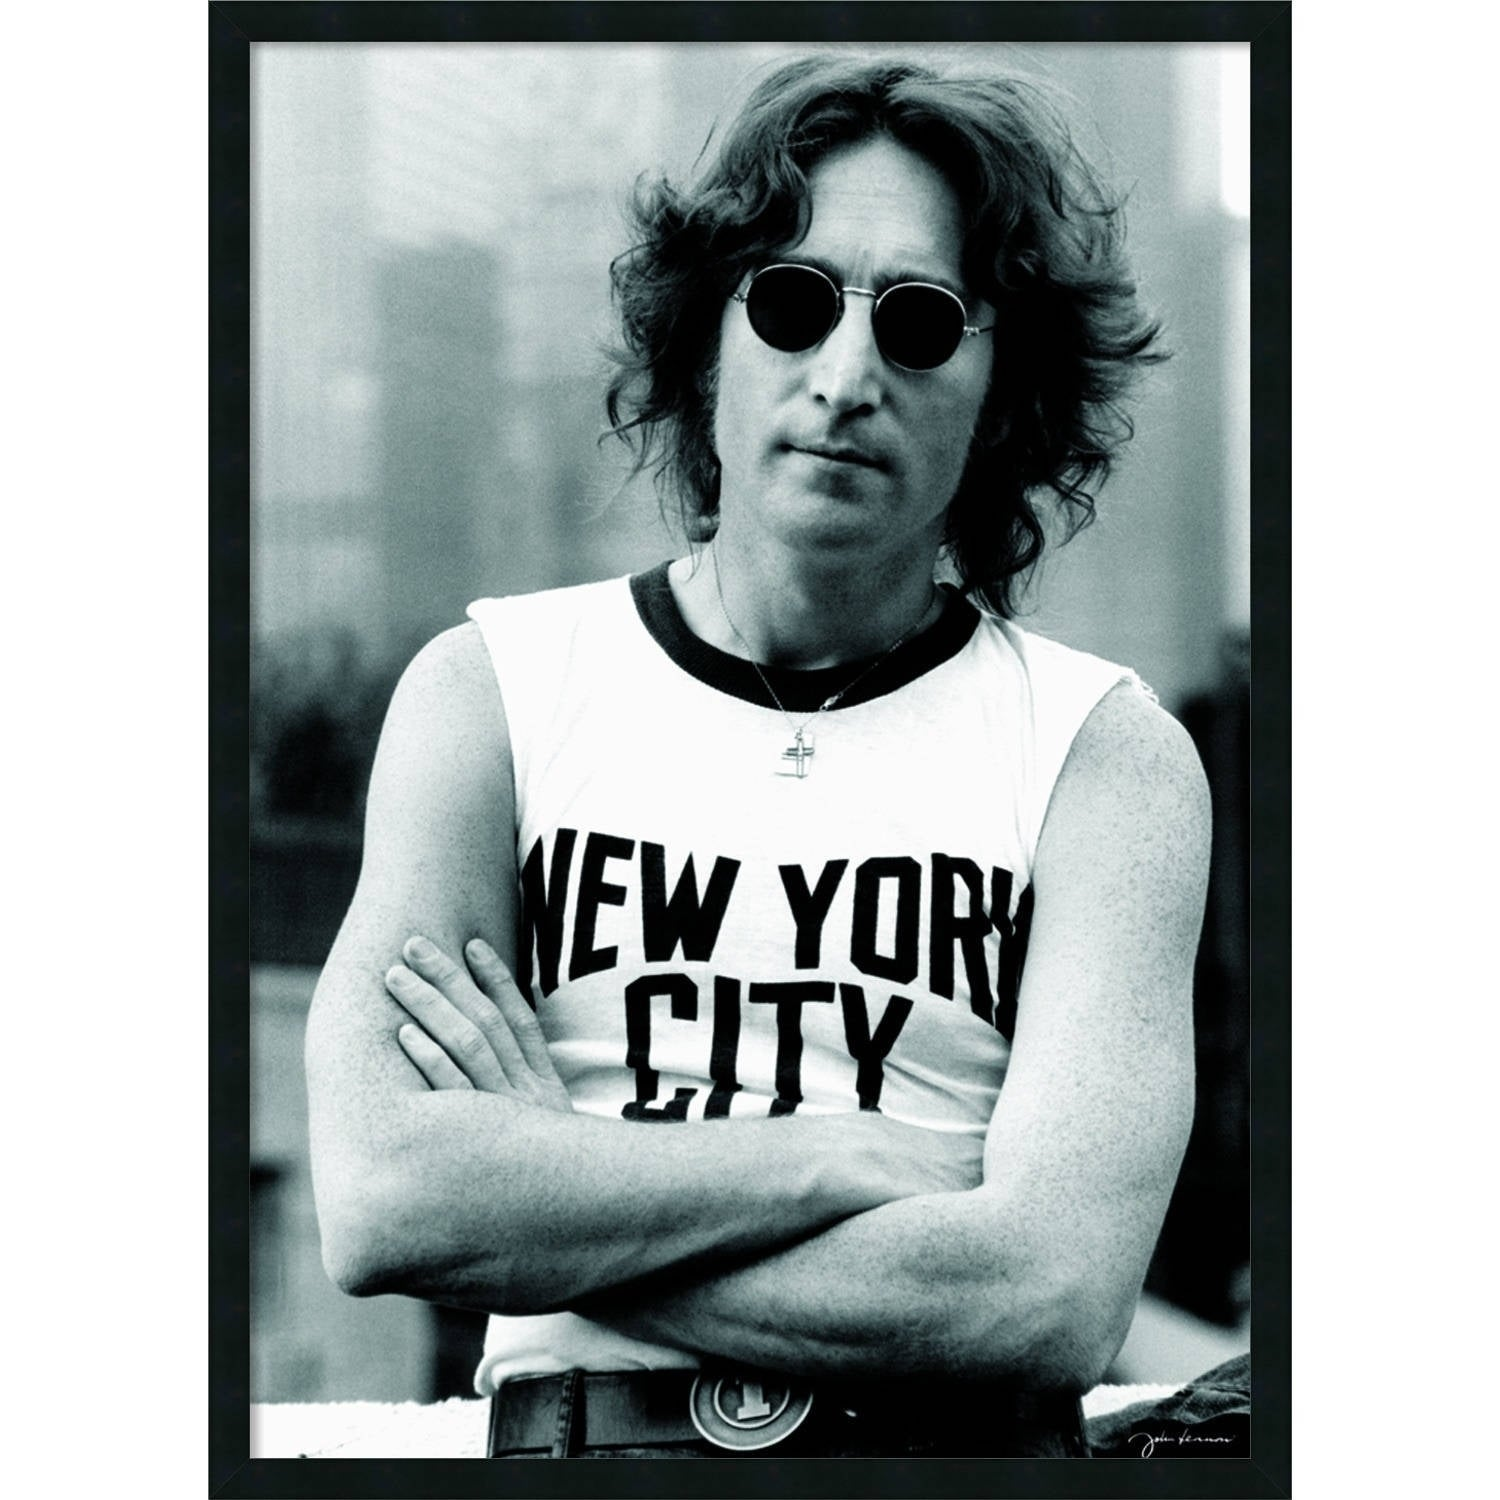 b0bcf885c79e4 Shop  John Lennon - NYC  25 x 37-inch Framed Art Print with Gel Coated  Finish - Free Shipping Today - Overstock - 5870501